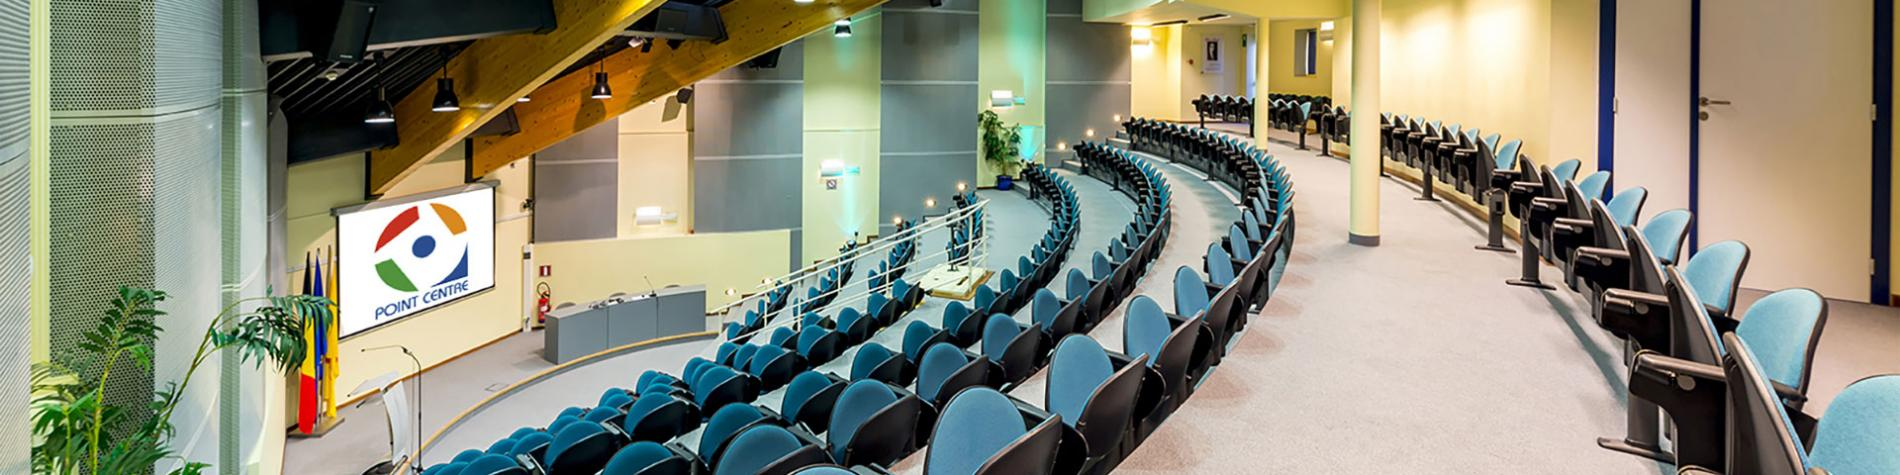 Auditorium du Point Centre